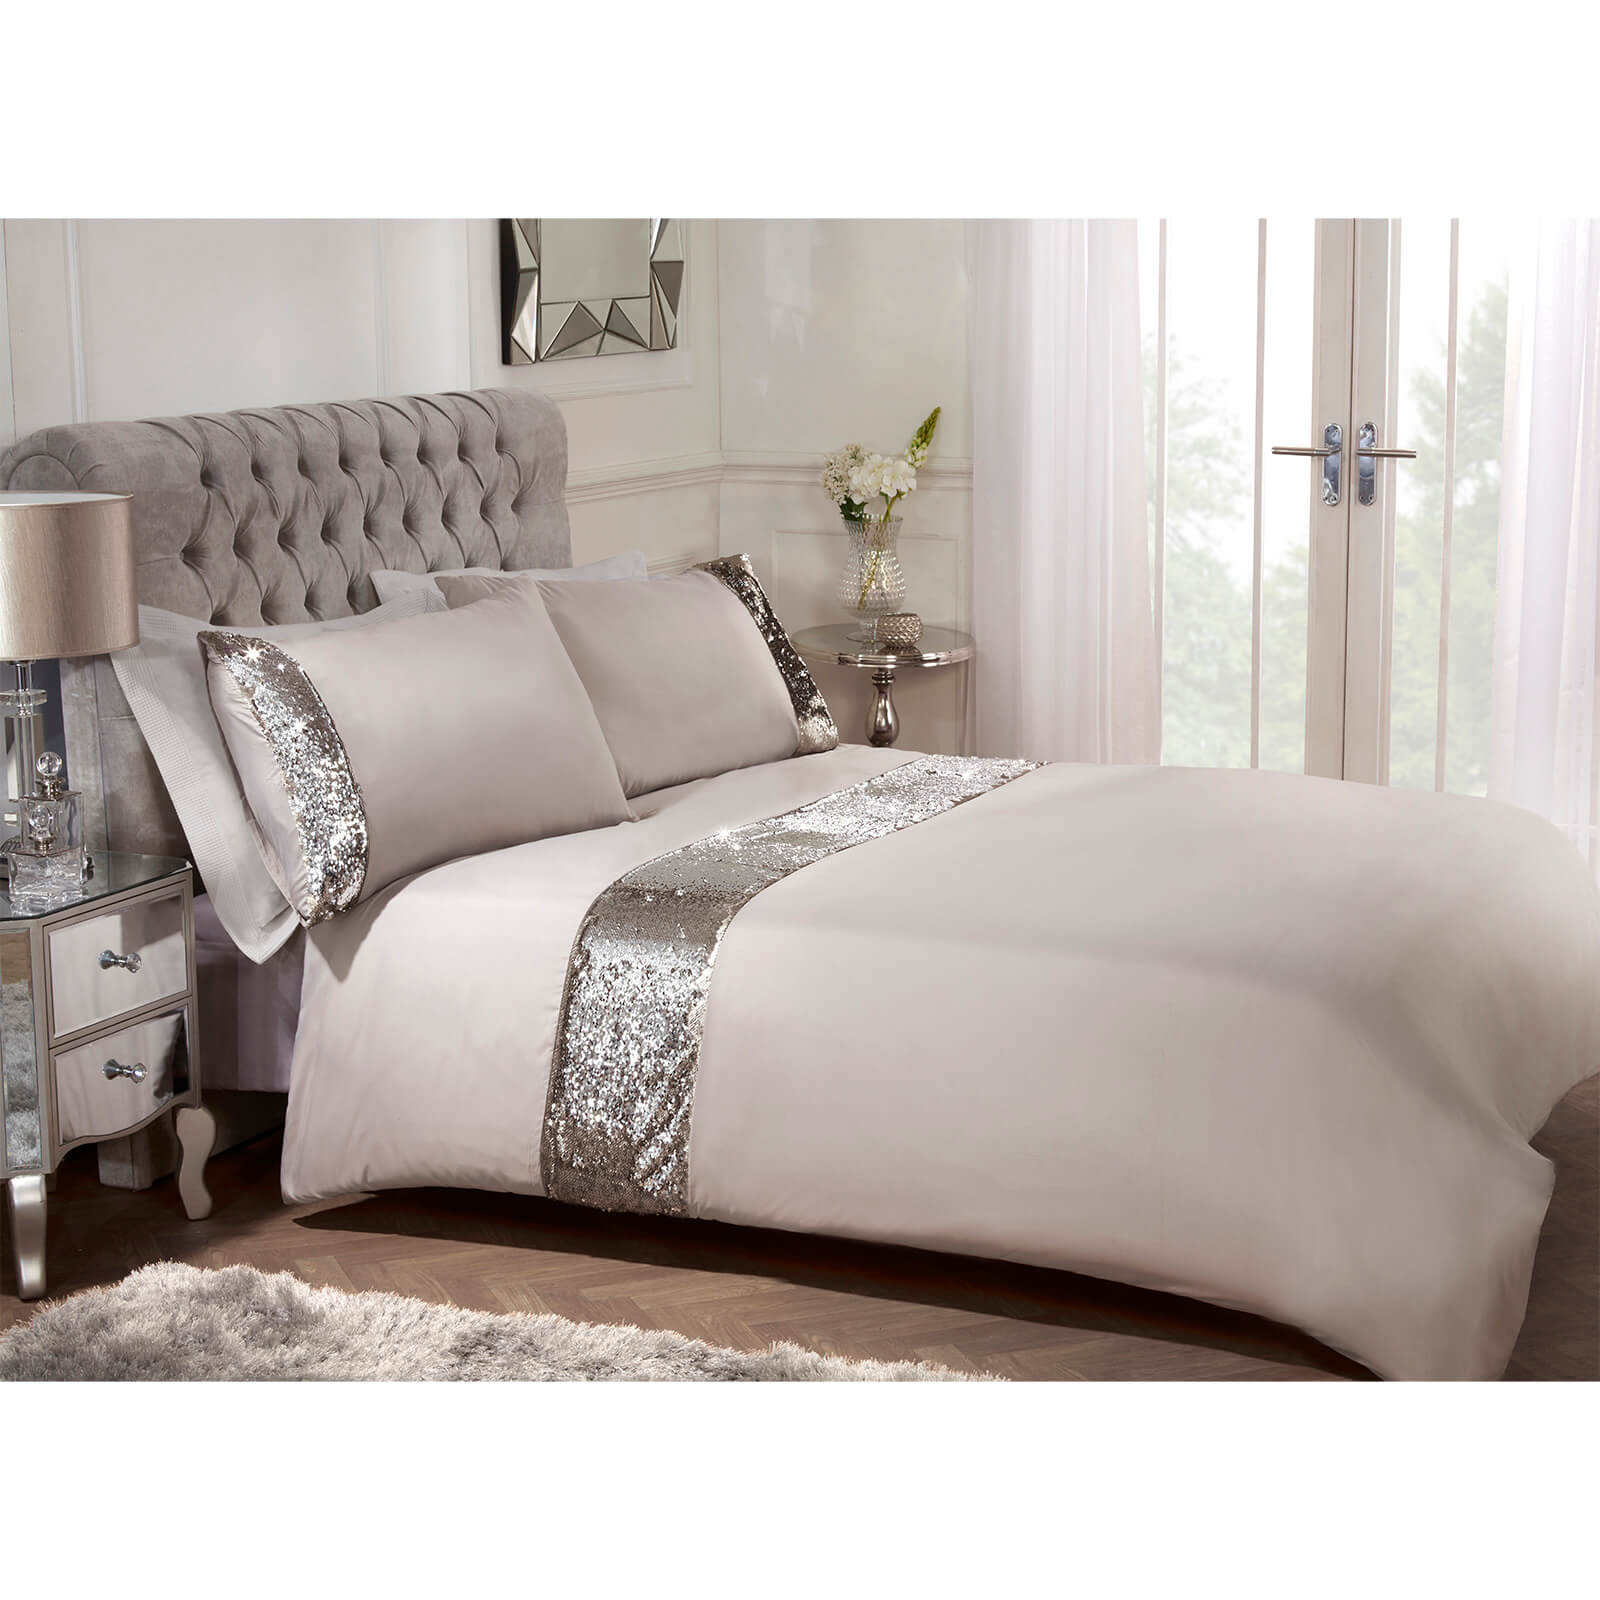 Sienna Mermaid Sequin Duvet Set - Stone